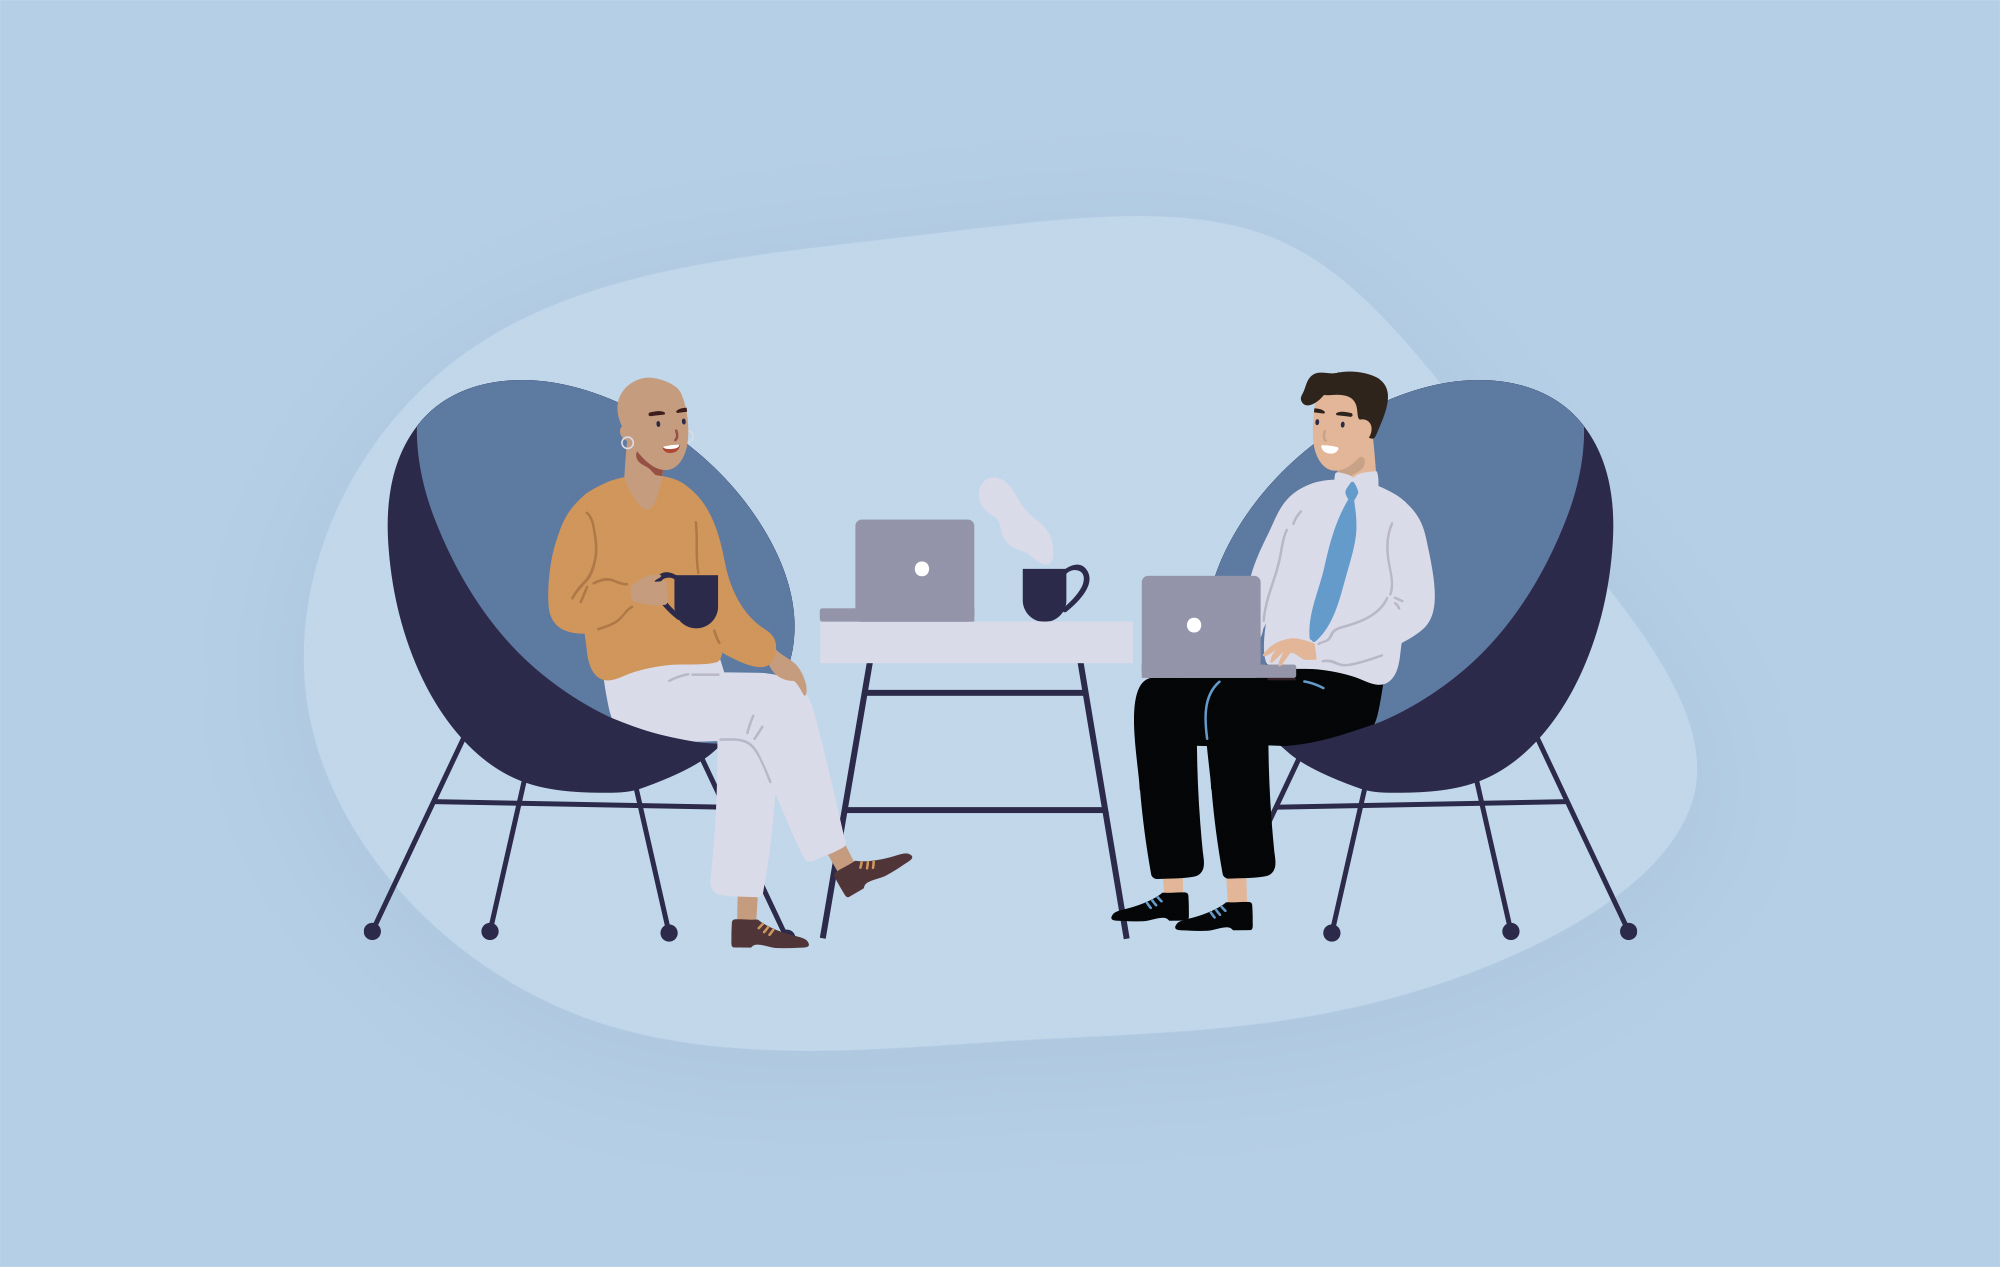 Two businesspeople sitting in chairs, having a meeting with their laptops and drinking coffee.